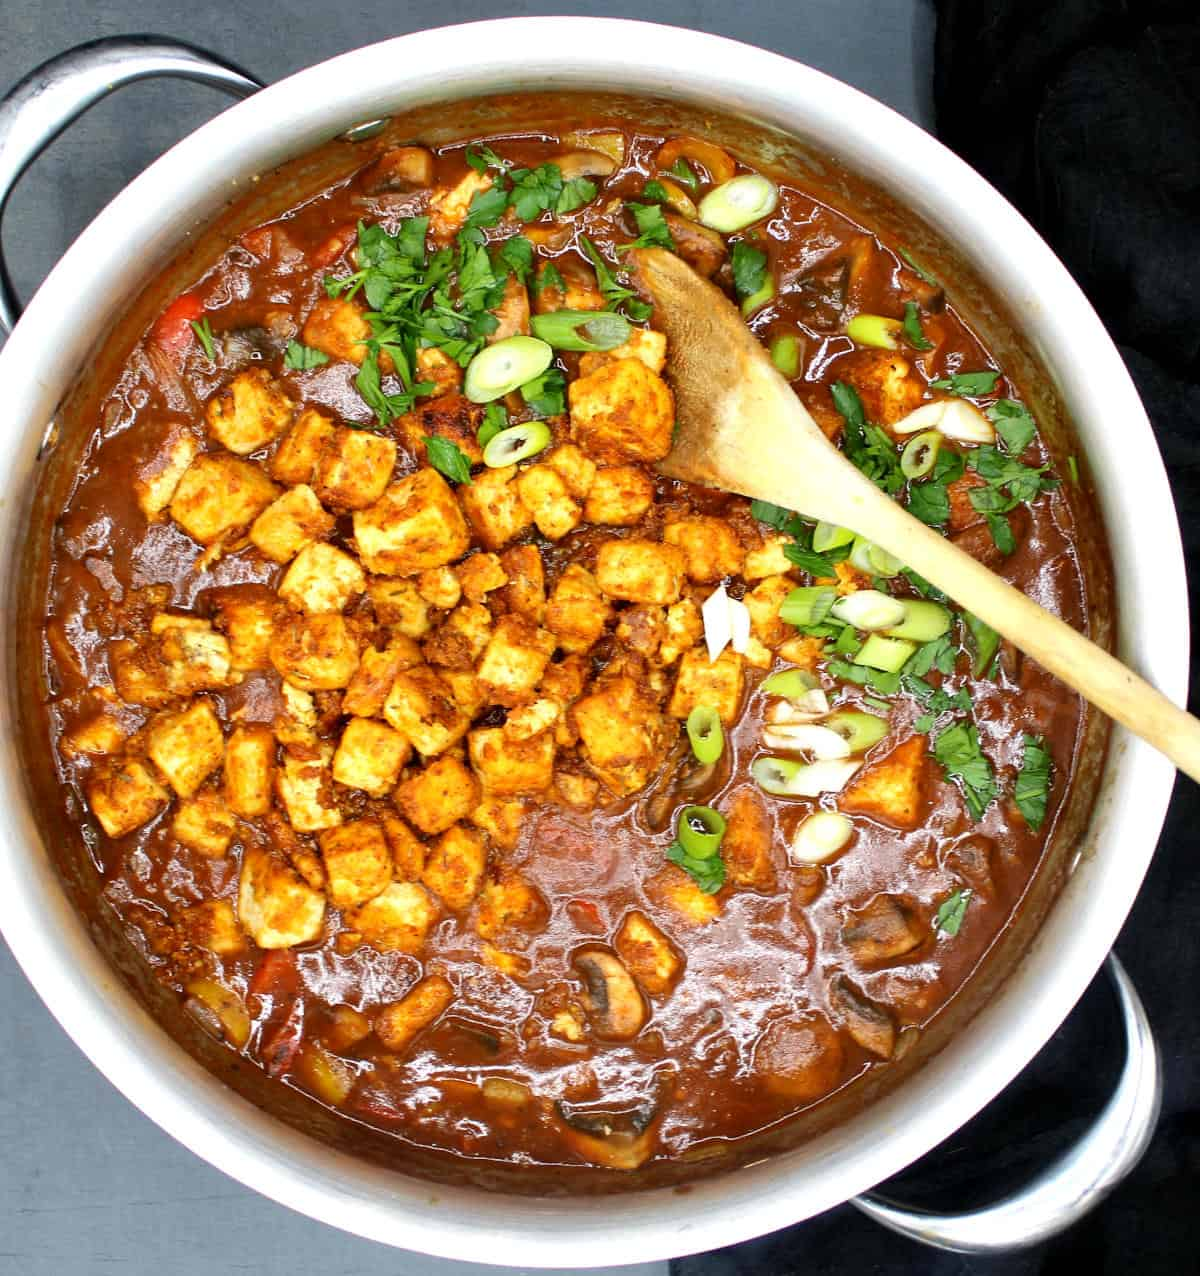 A vegan etouffee with Cajun-seasoned tofu, scallions, parsley and vegies in a steel pot with a wooden spoon.